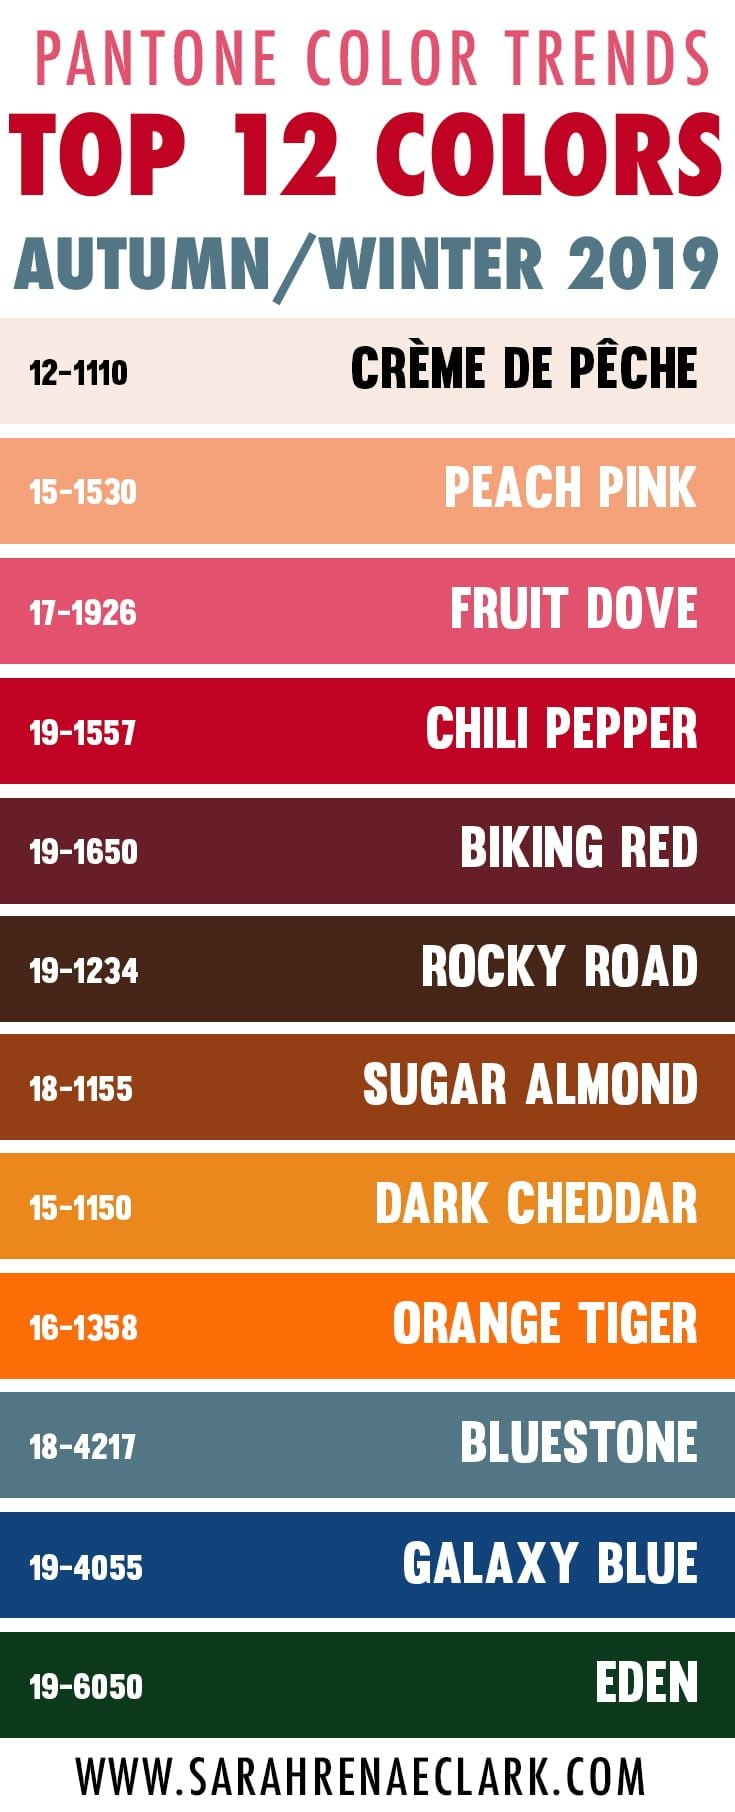 2019 Pantone Color Trend Report - Top 12 Colors for Autumn/Winter 2019-20 include Crème de Pêche, Peach Pink, Fruit Dove, Chili Pepper, Biking Red, Rocky Road, Sugar Almond, Dark Cheddar, Orange Tiger, Bluestone, Galaxy Blue and Eden